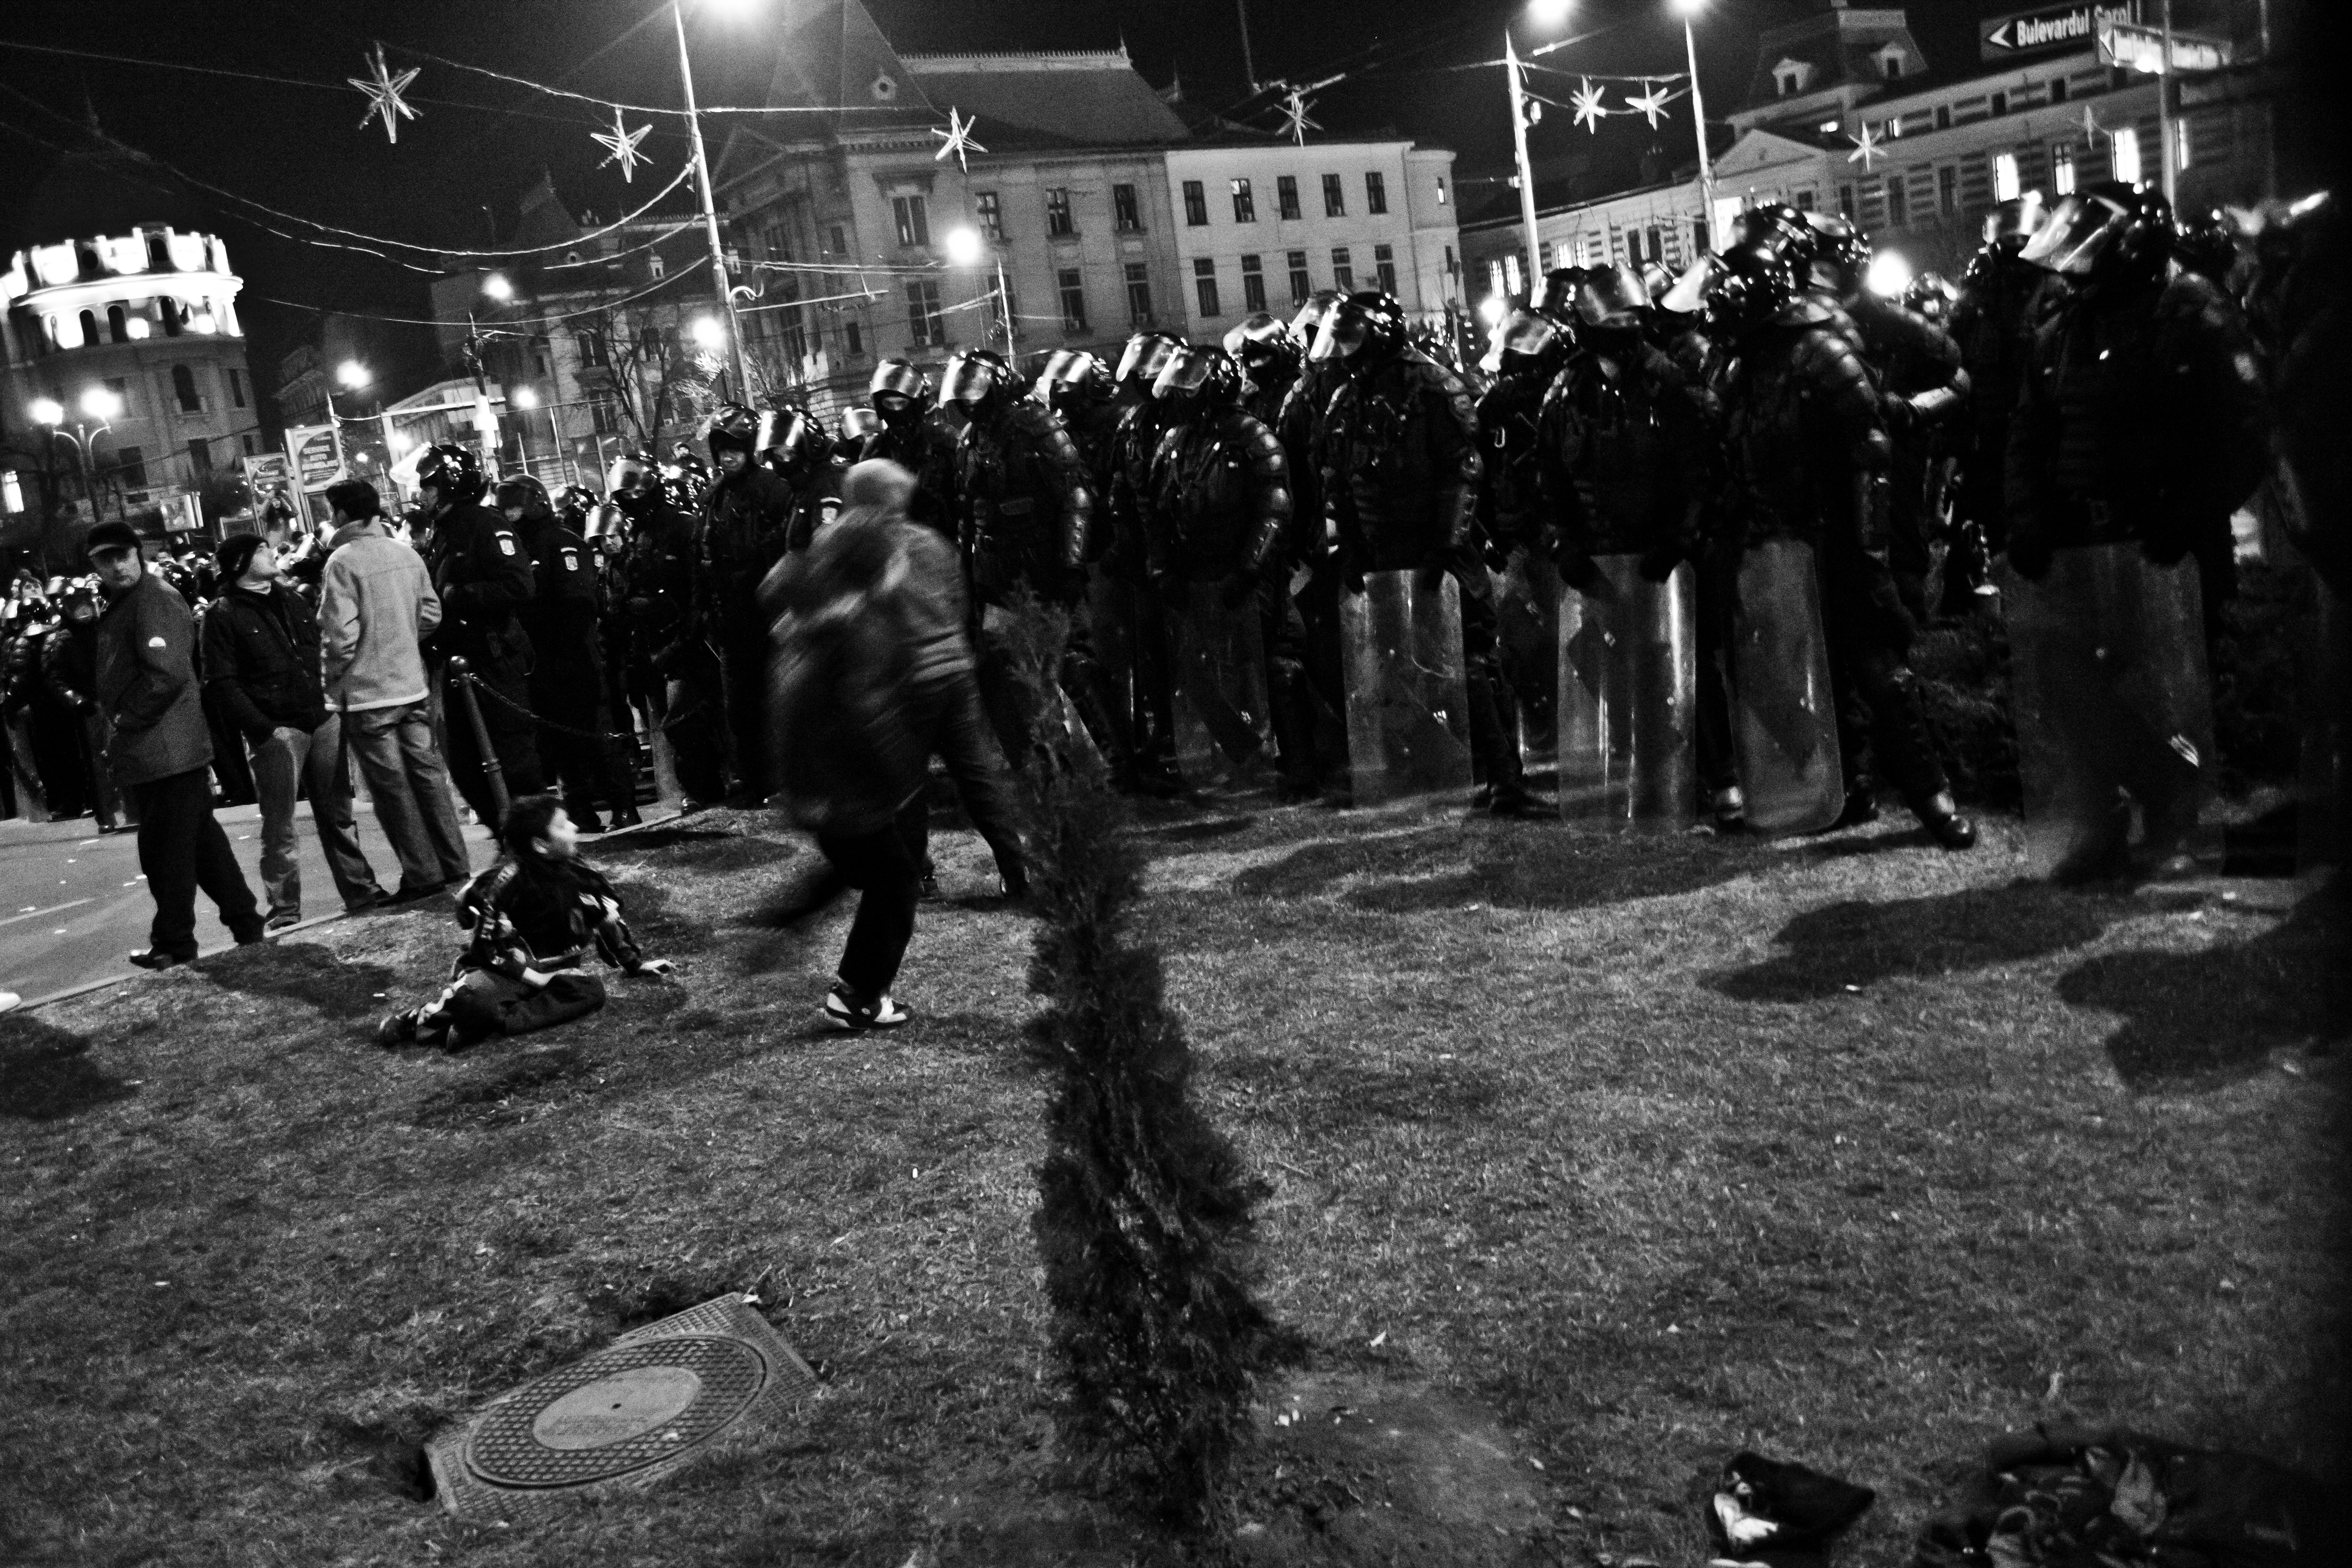 Bucharest antigovernment protests, University Square, January 19th 2012